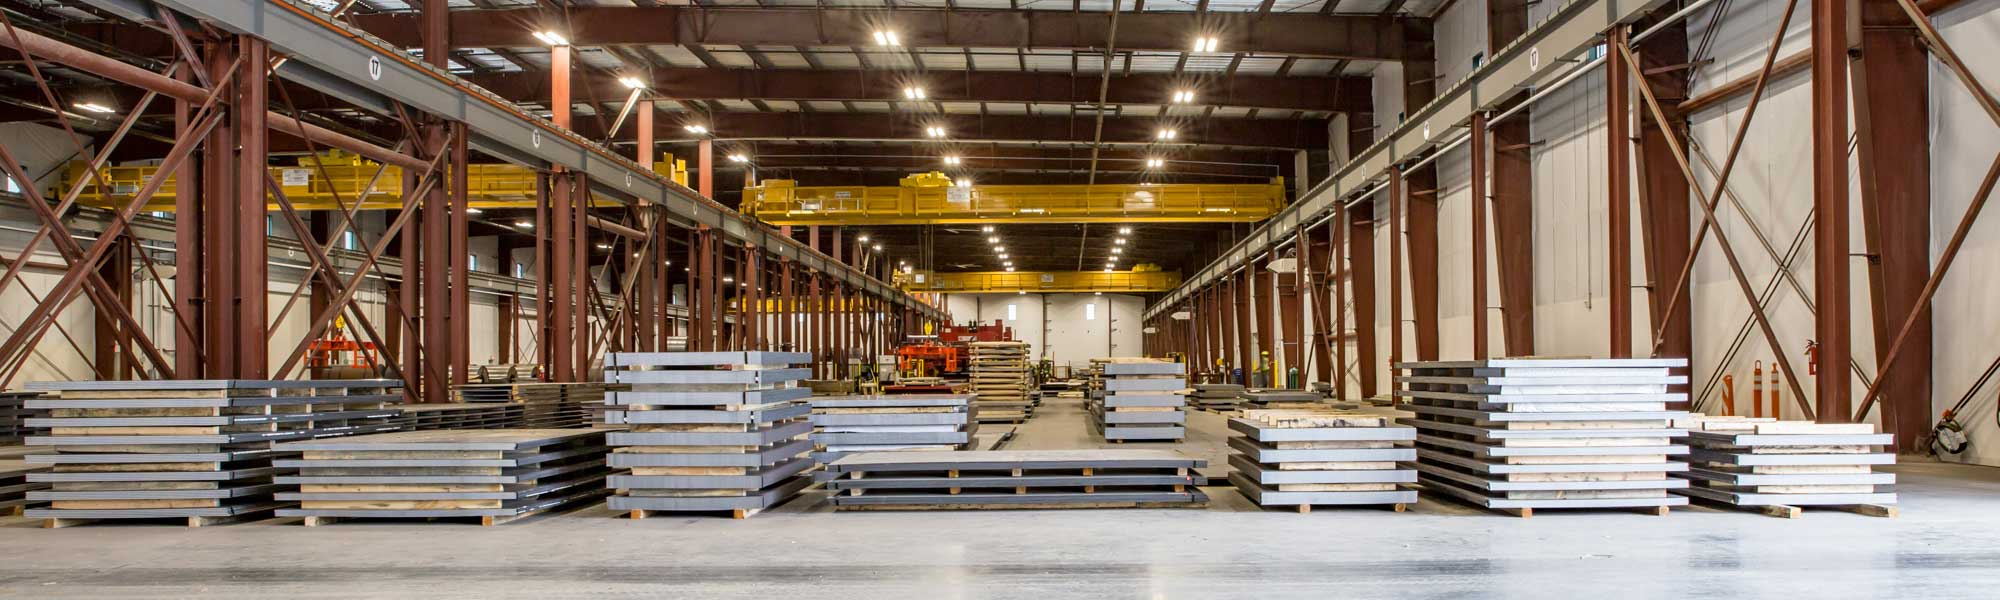 steel distributor warehouse with raw steel on pallets